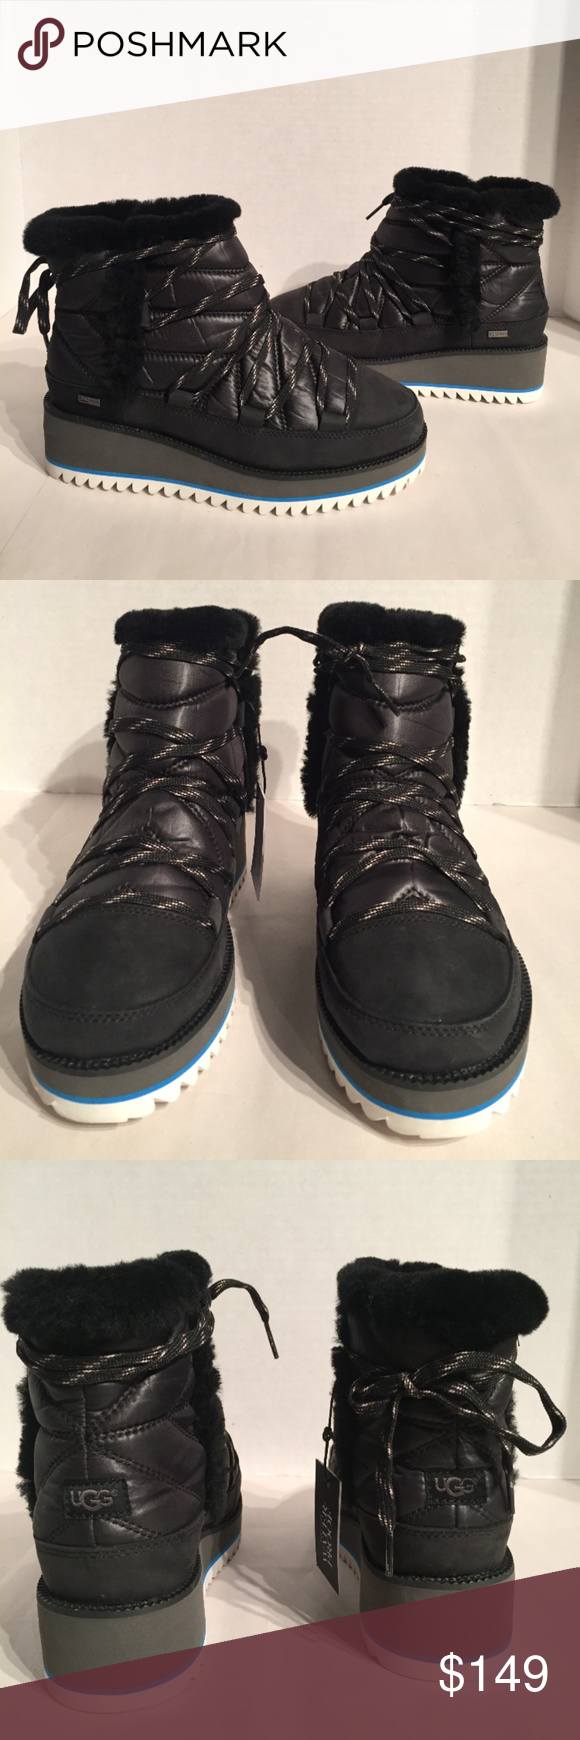 68cdc382601 Ugg Women's Cayden Puff Black Mini Boots New without box Buyers are ...